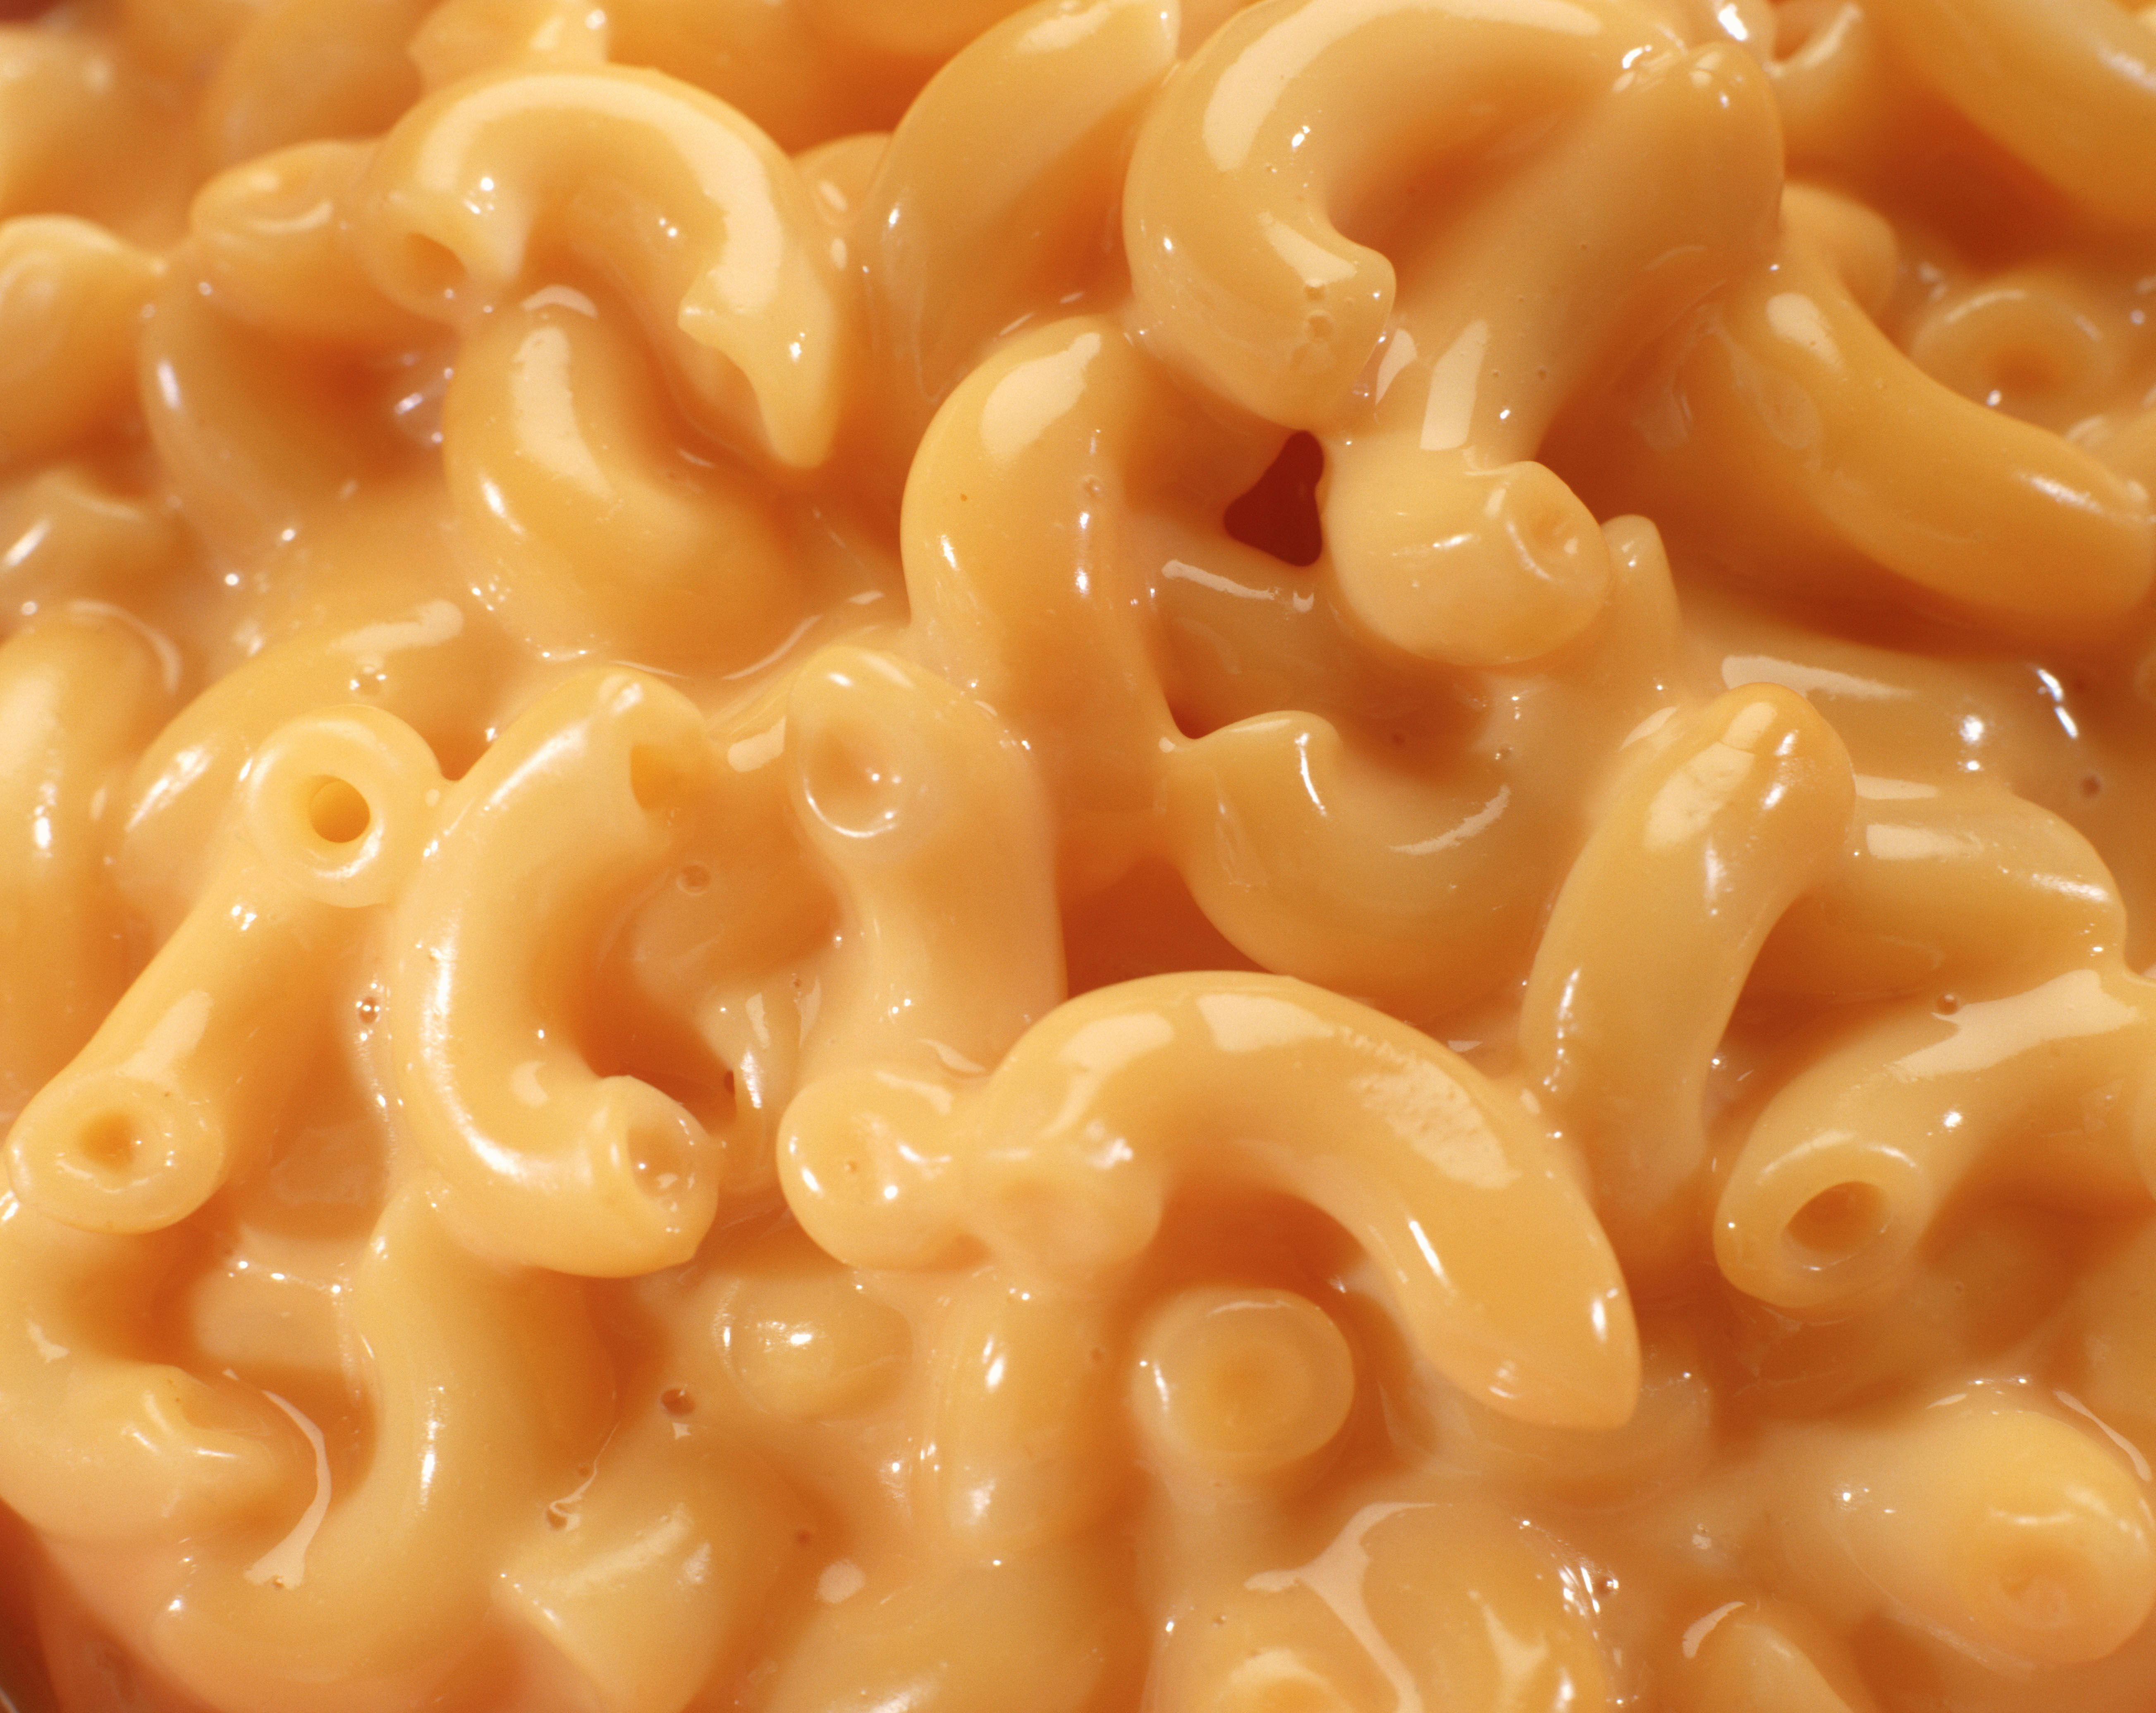 9 Reasons You Should Never Eat Mac and Cheese